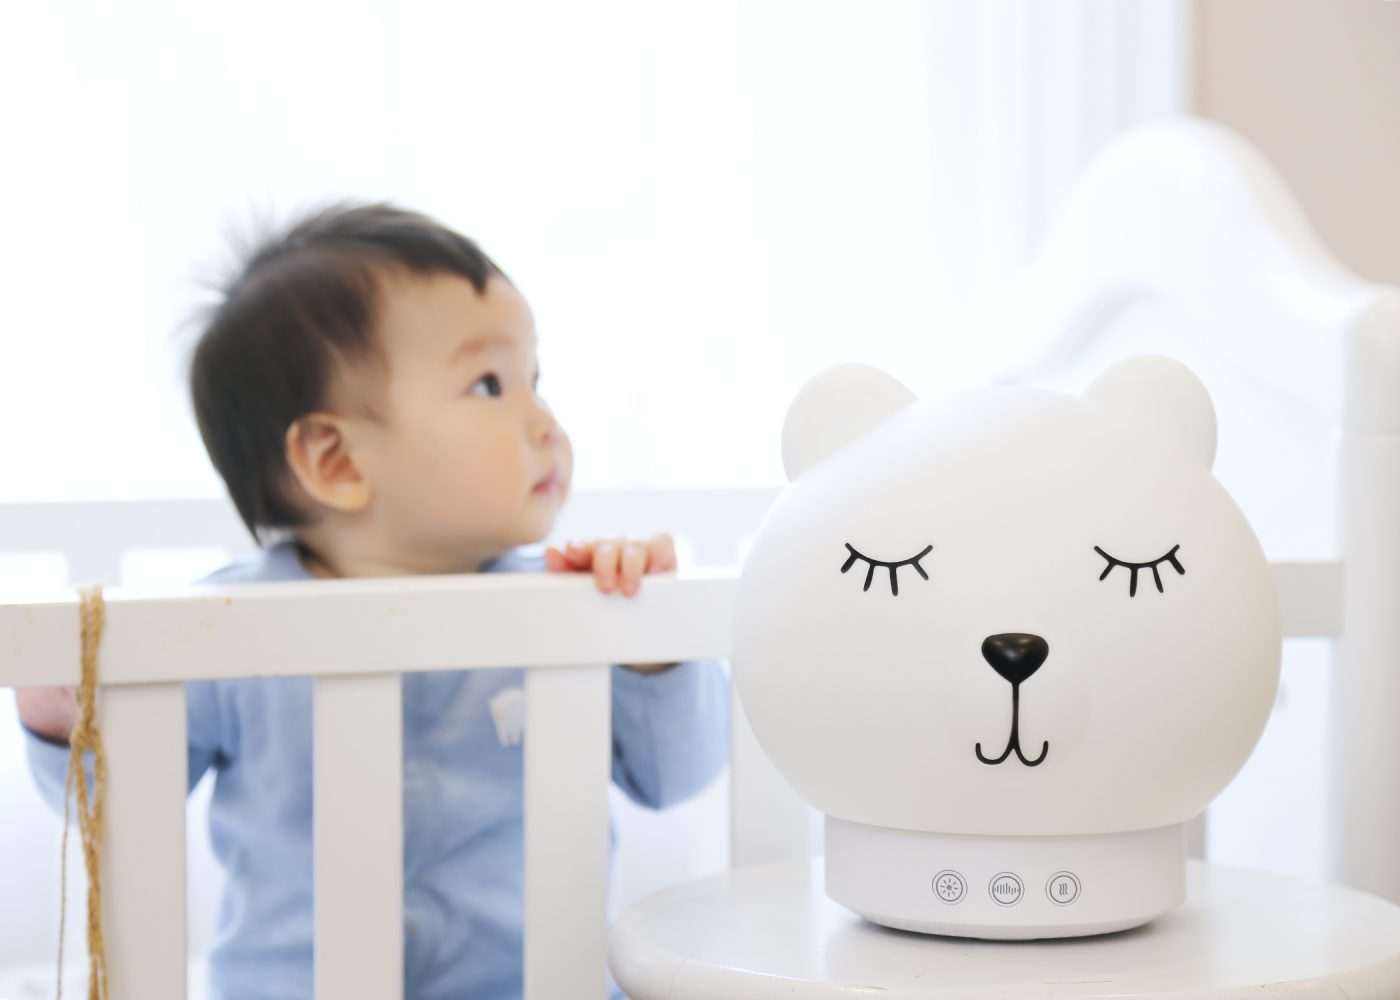 Baby Sound Machine,White Noise Machine for Sleeping,Portable Rechargeable Sleep Soothing Machine with Clorful Night Light,15 Sounds/&lullabies and Cry Sensor,Shape for Infant,Baby,Kid